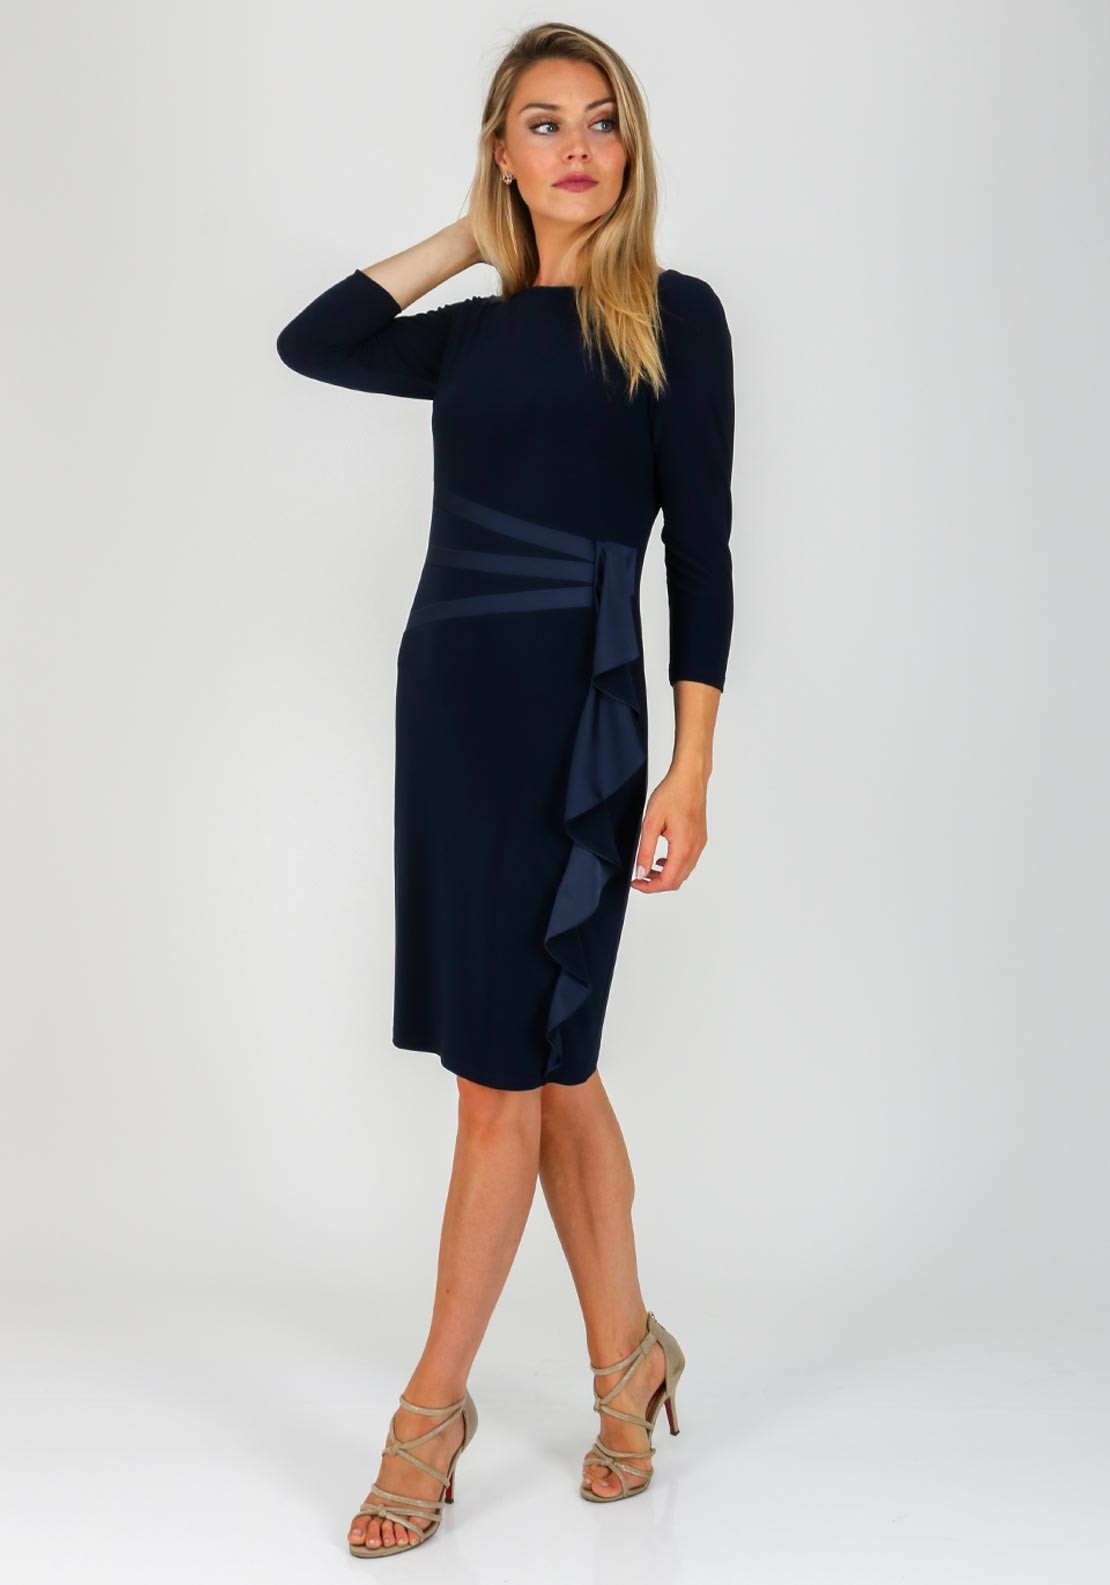 cecd146dc523 Joseph Ribkoff Satin Ruffle Pencil Dress, Navy. Be the first to review this  product